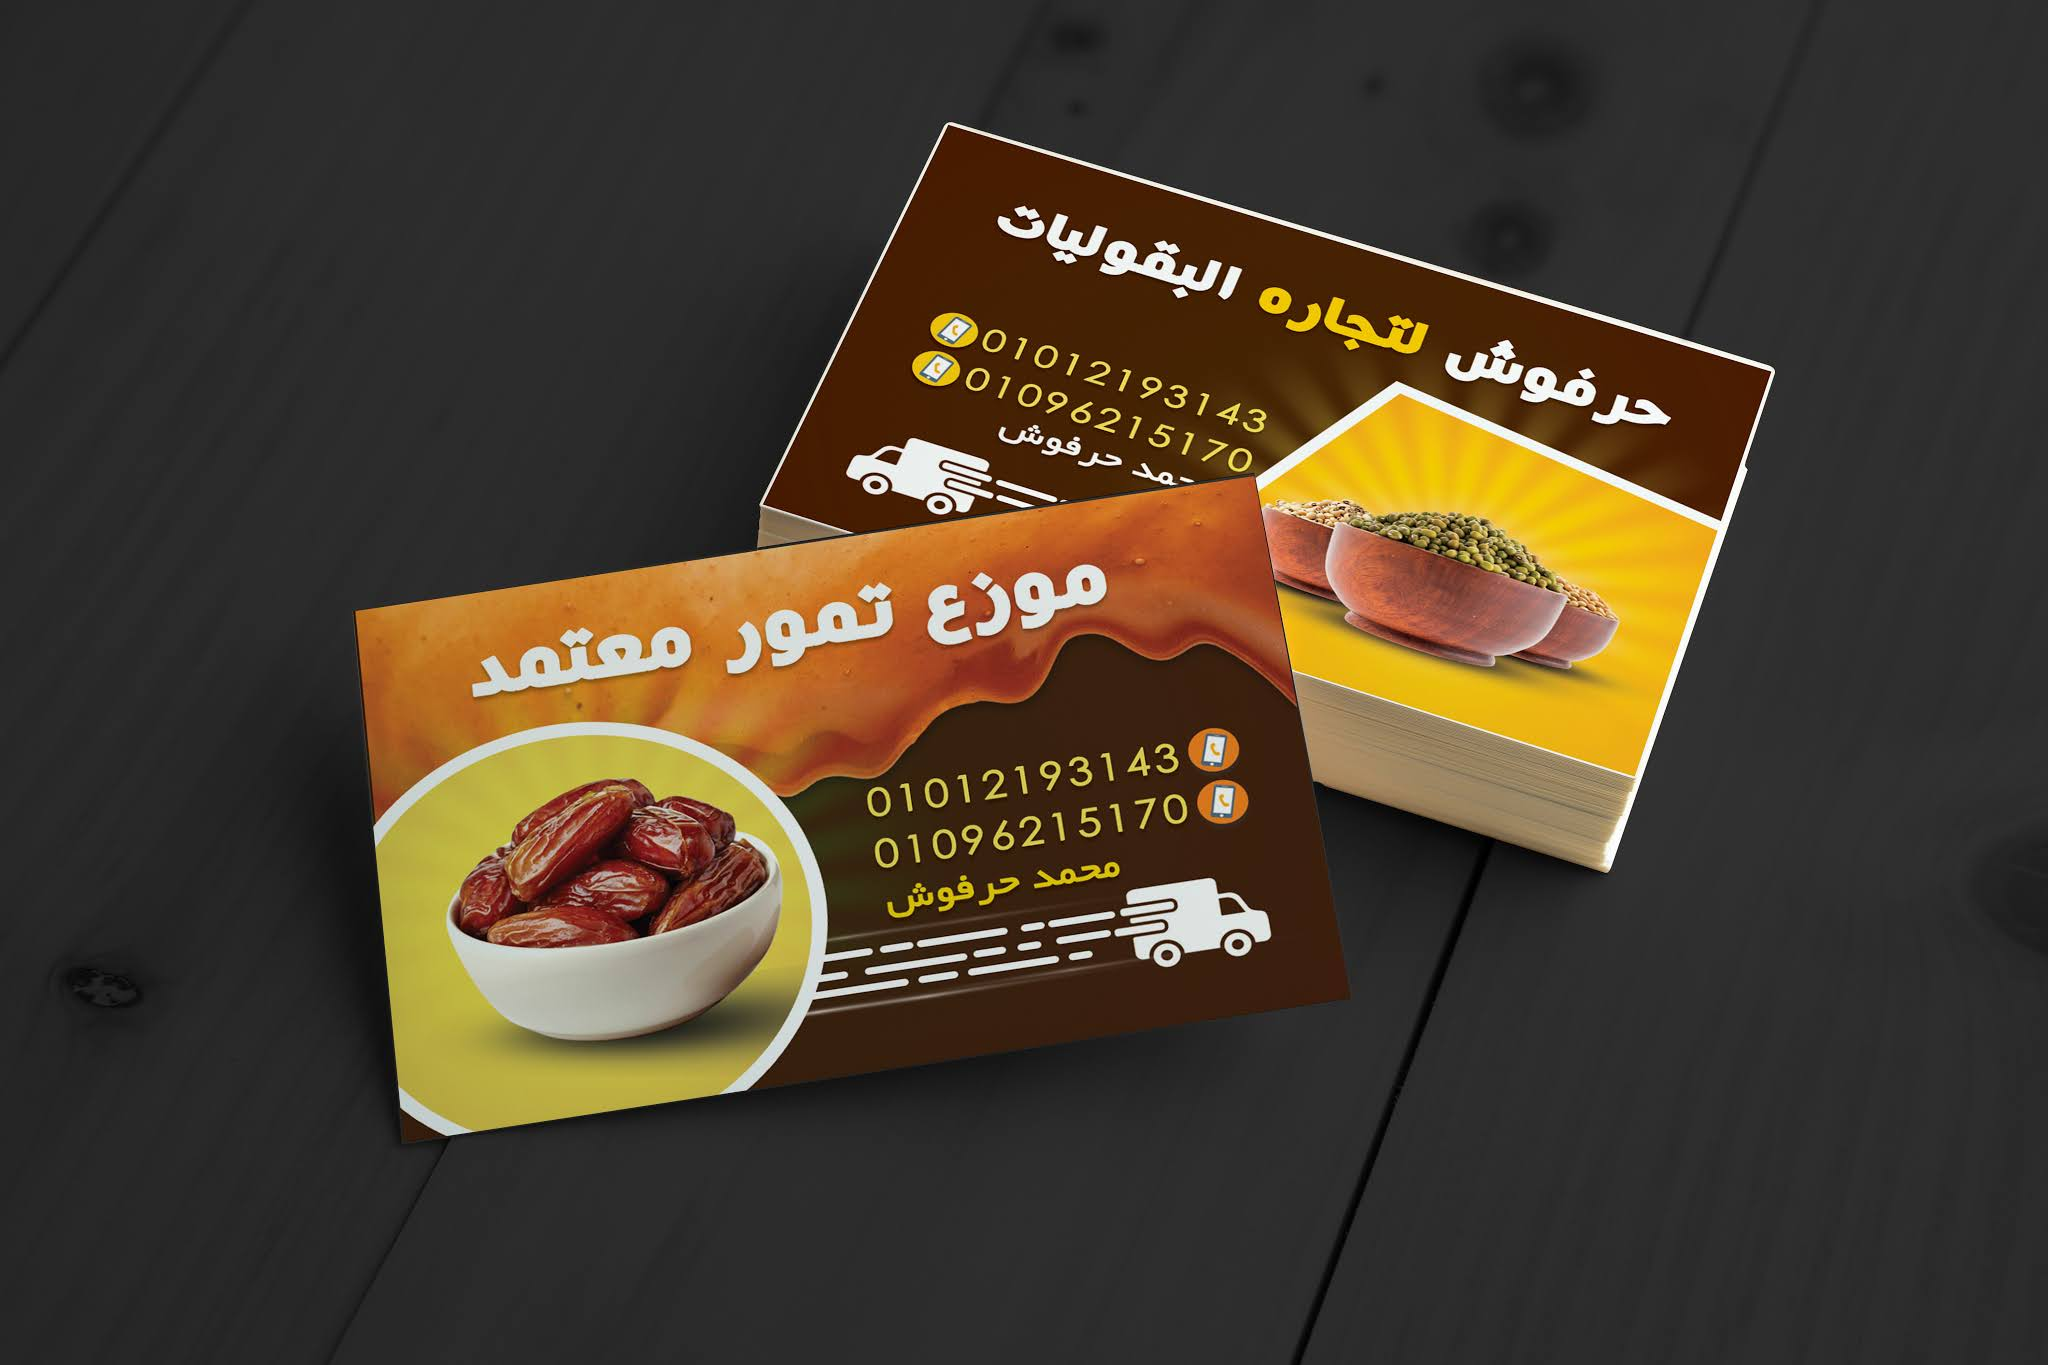 ree Psd Card Download A business card for selling sweets and dates